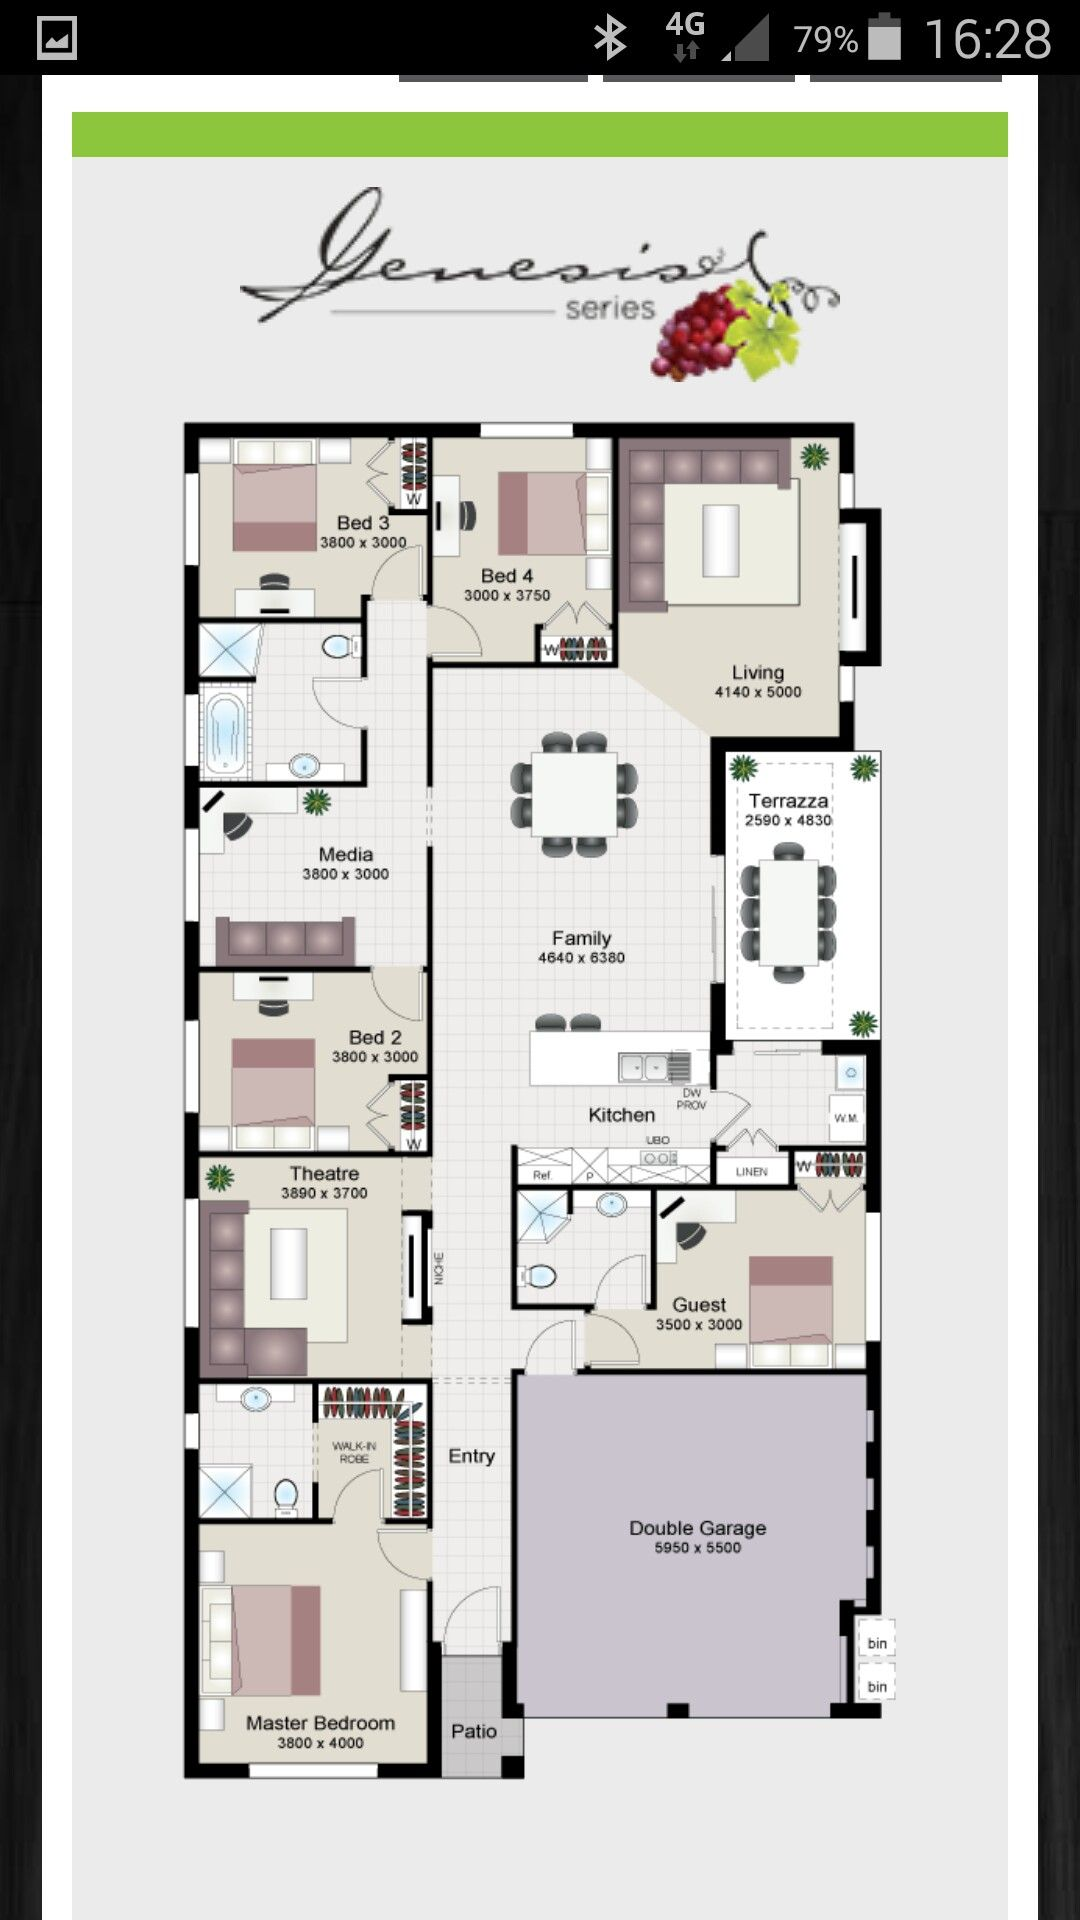 Beechwood One Storey House House Layout Plans Dream House Plans